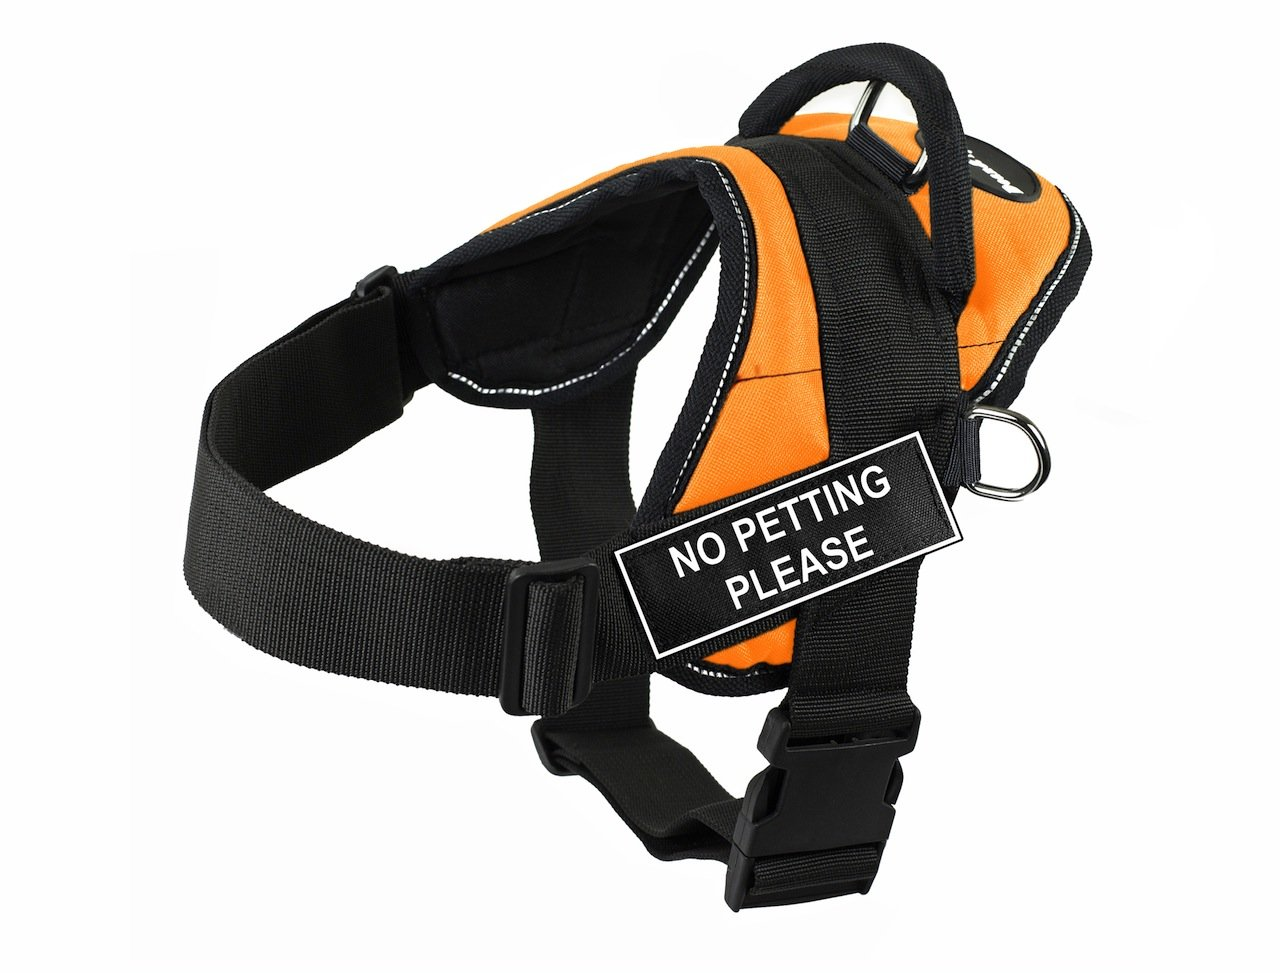 Dean & Tyler DT Fun No Petting Please Harness with Reflective Trim, X-Small, orange